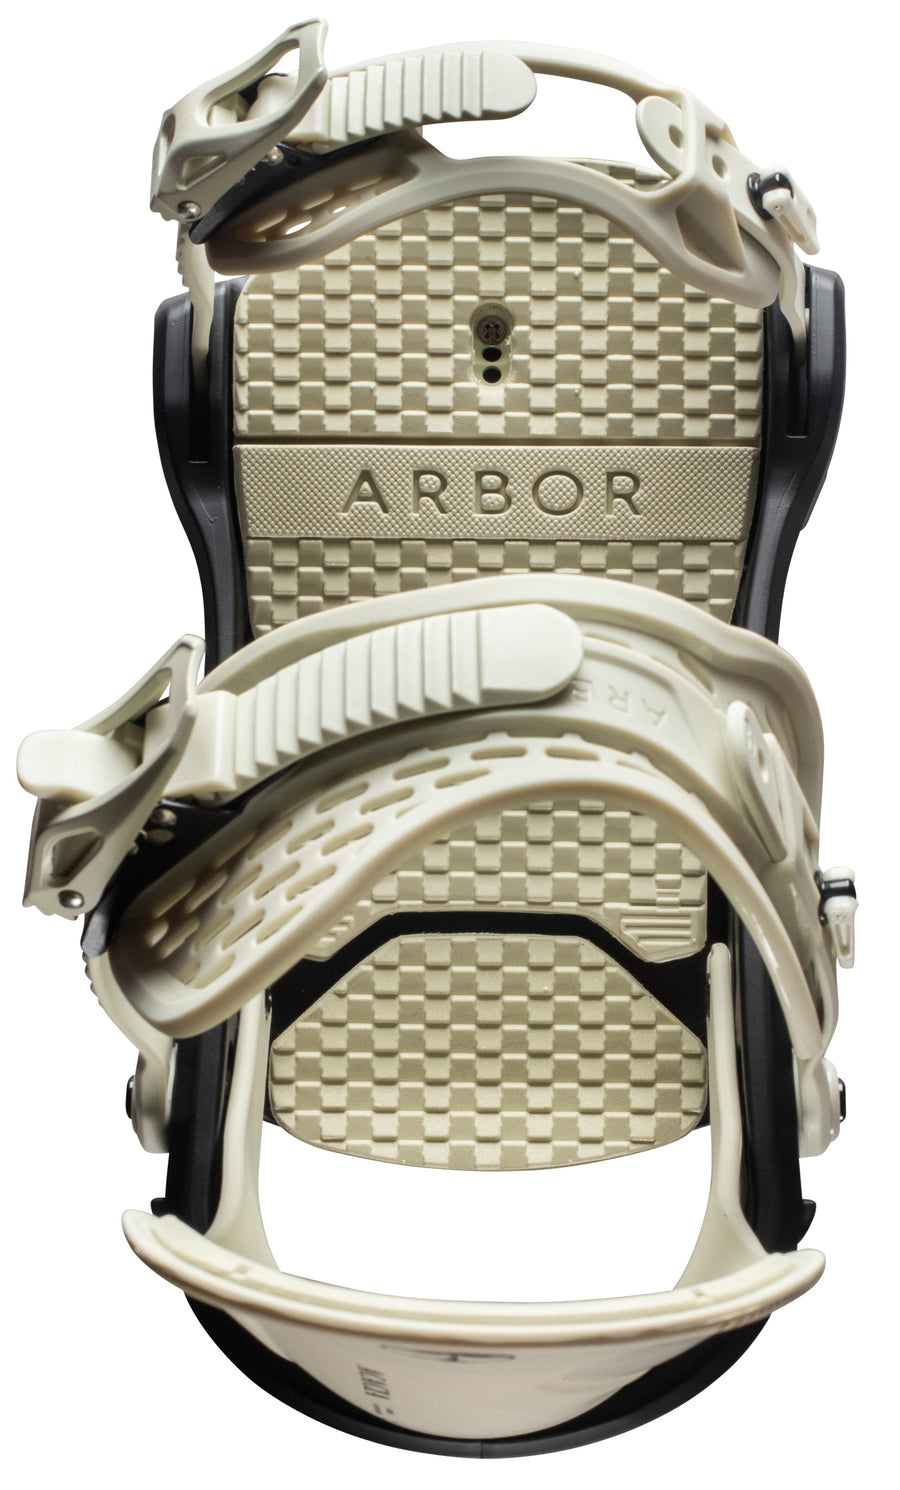 2021 Arbor Acacia Womens Snowboard Binding in Black